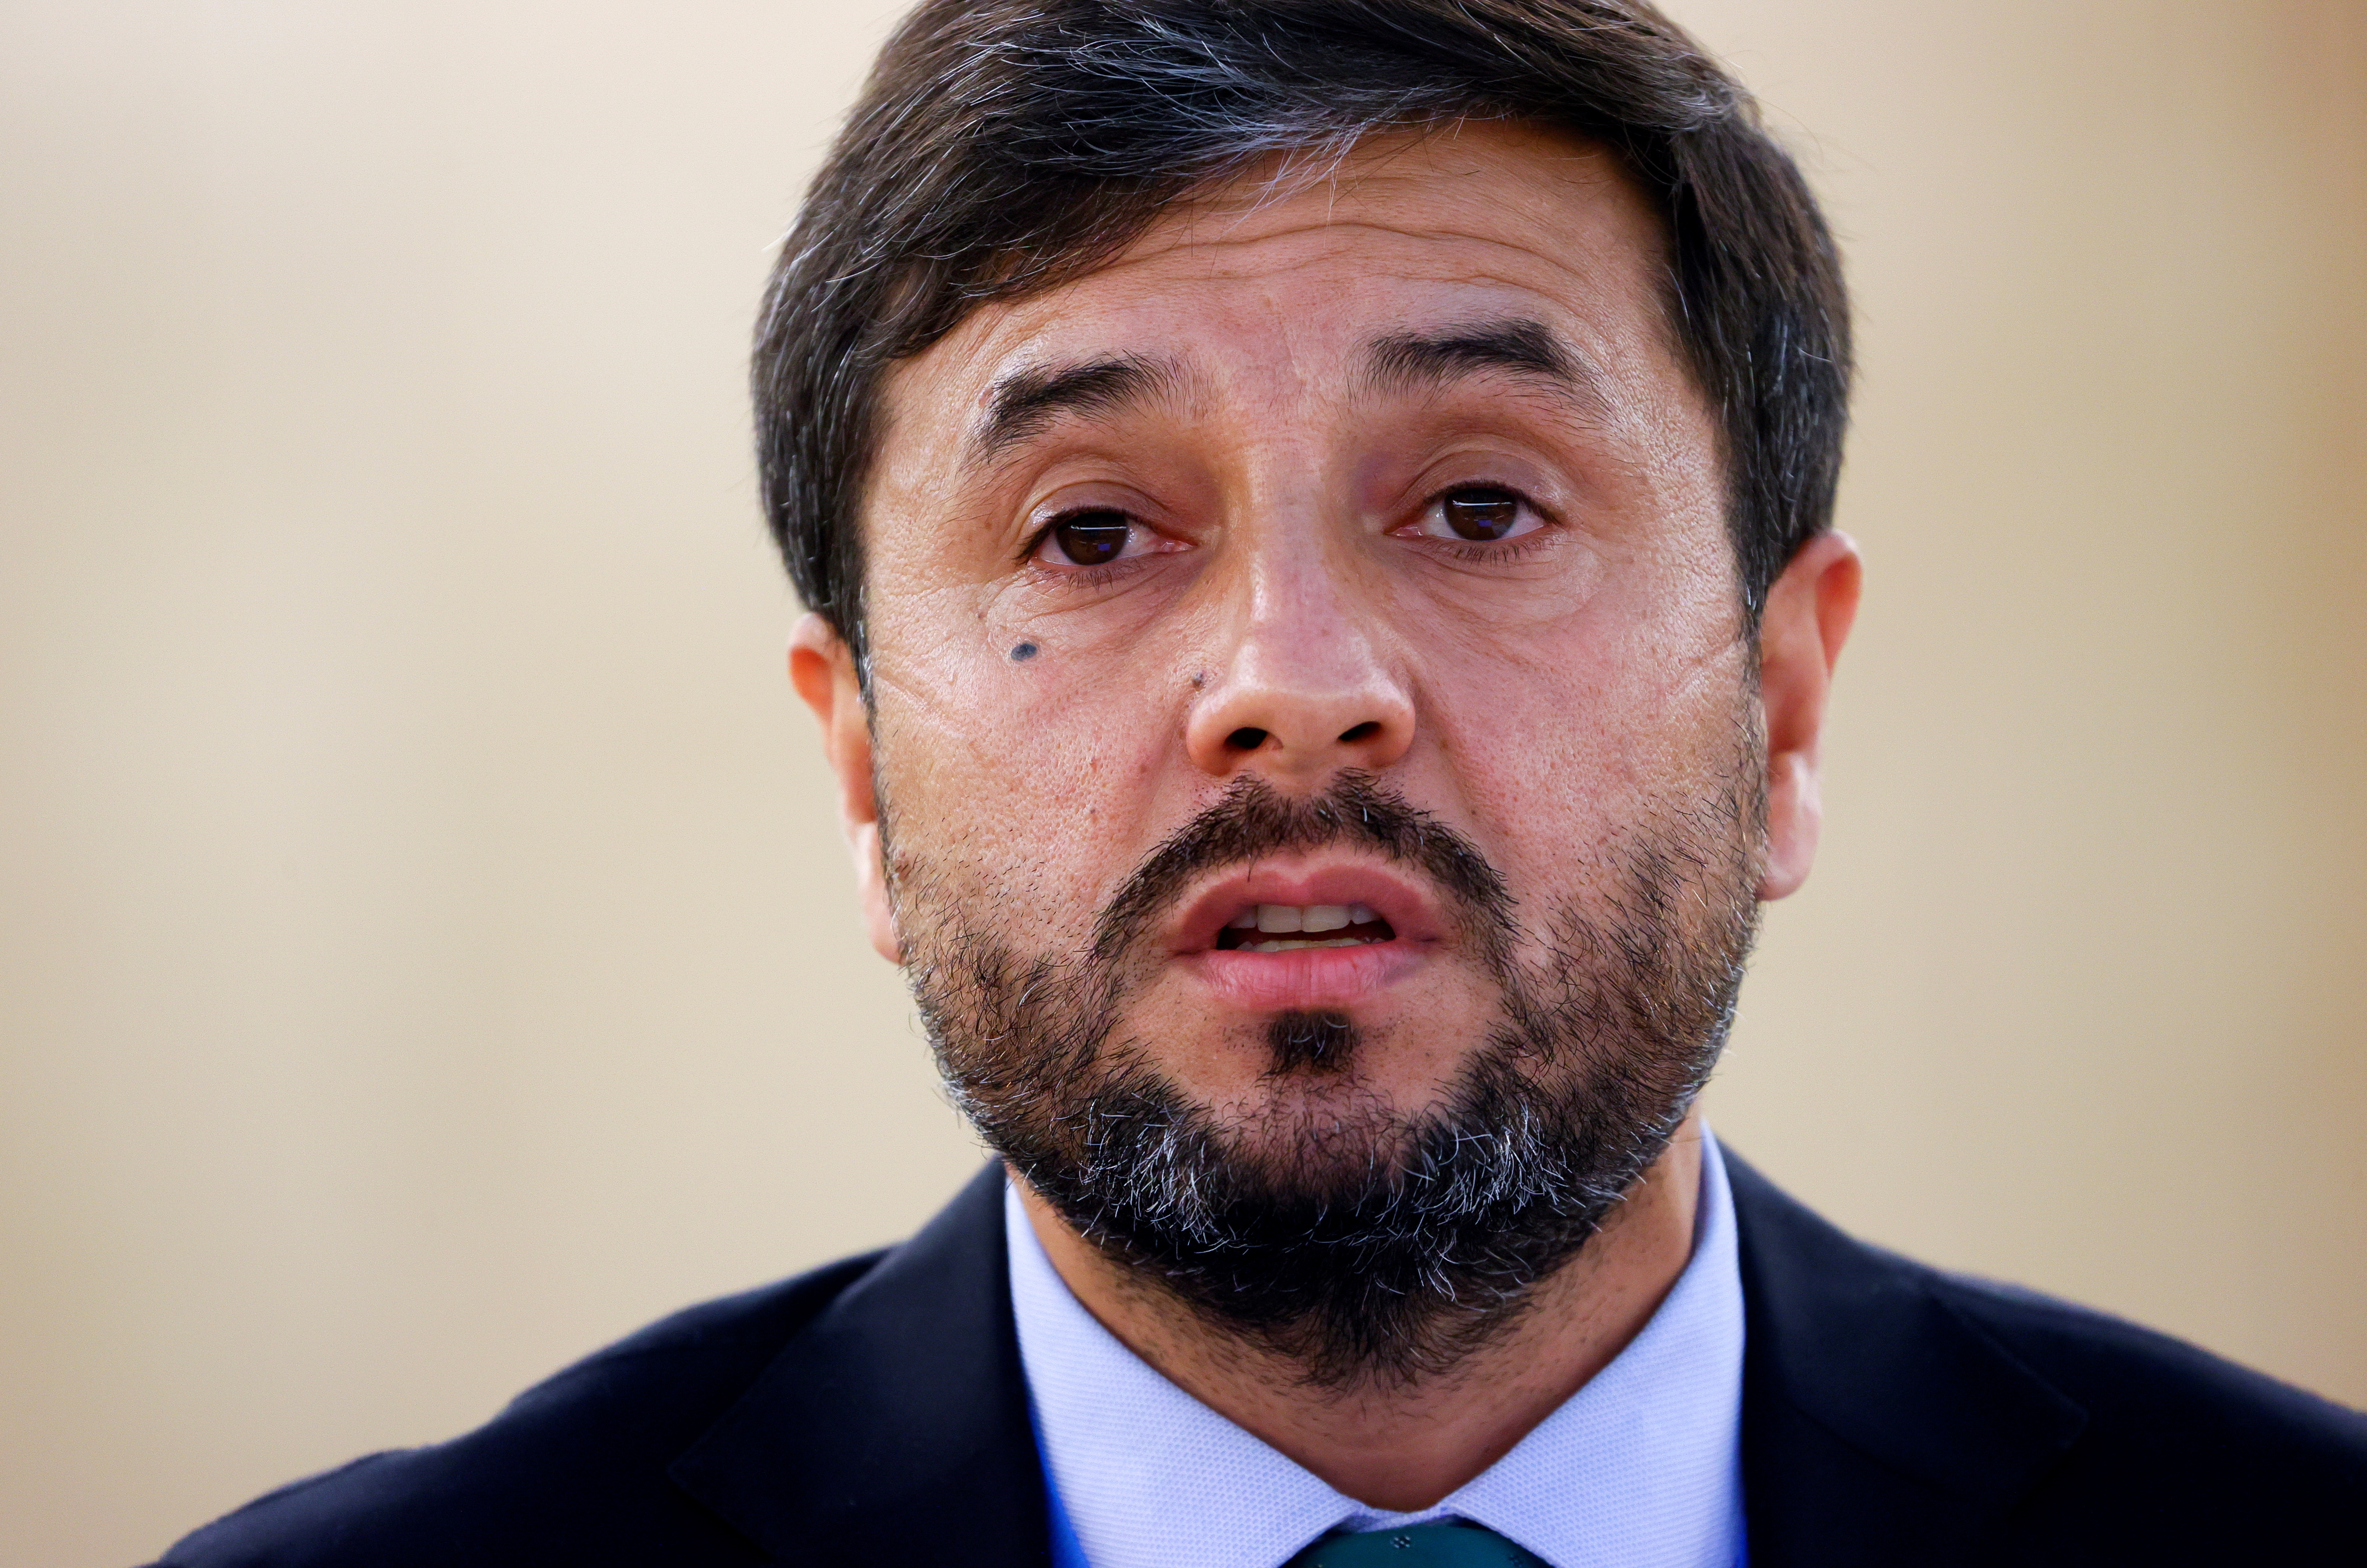 Afghanistan Ambassador Nasir Ahmad Andisha speaks during a special session of the Human Rights Council on the situation in Afghanistan, at the European headquarters of the United Nations in Geneva, Switzerland, August 24, 2021. REUTERS/Denis Balibouse